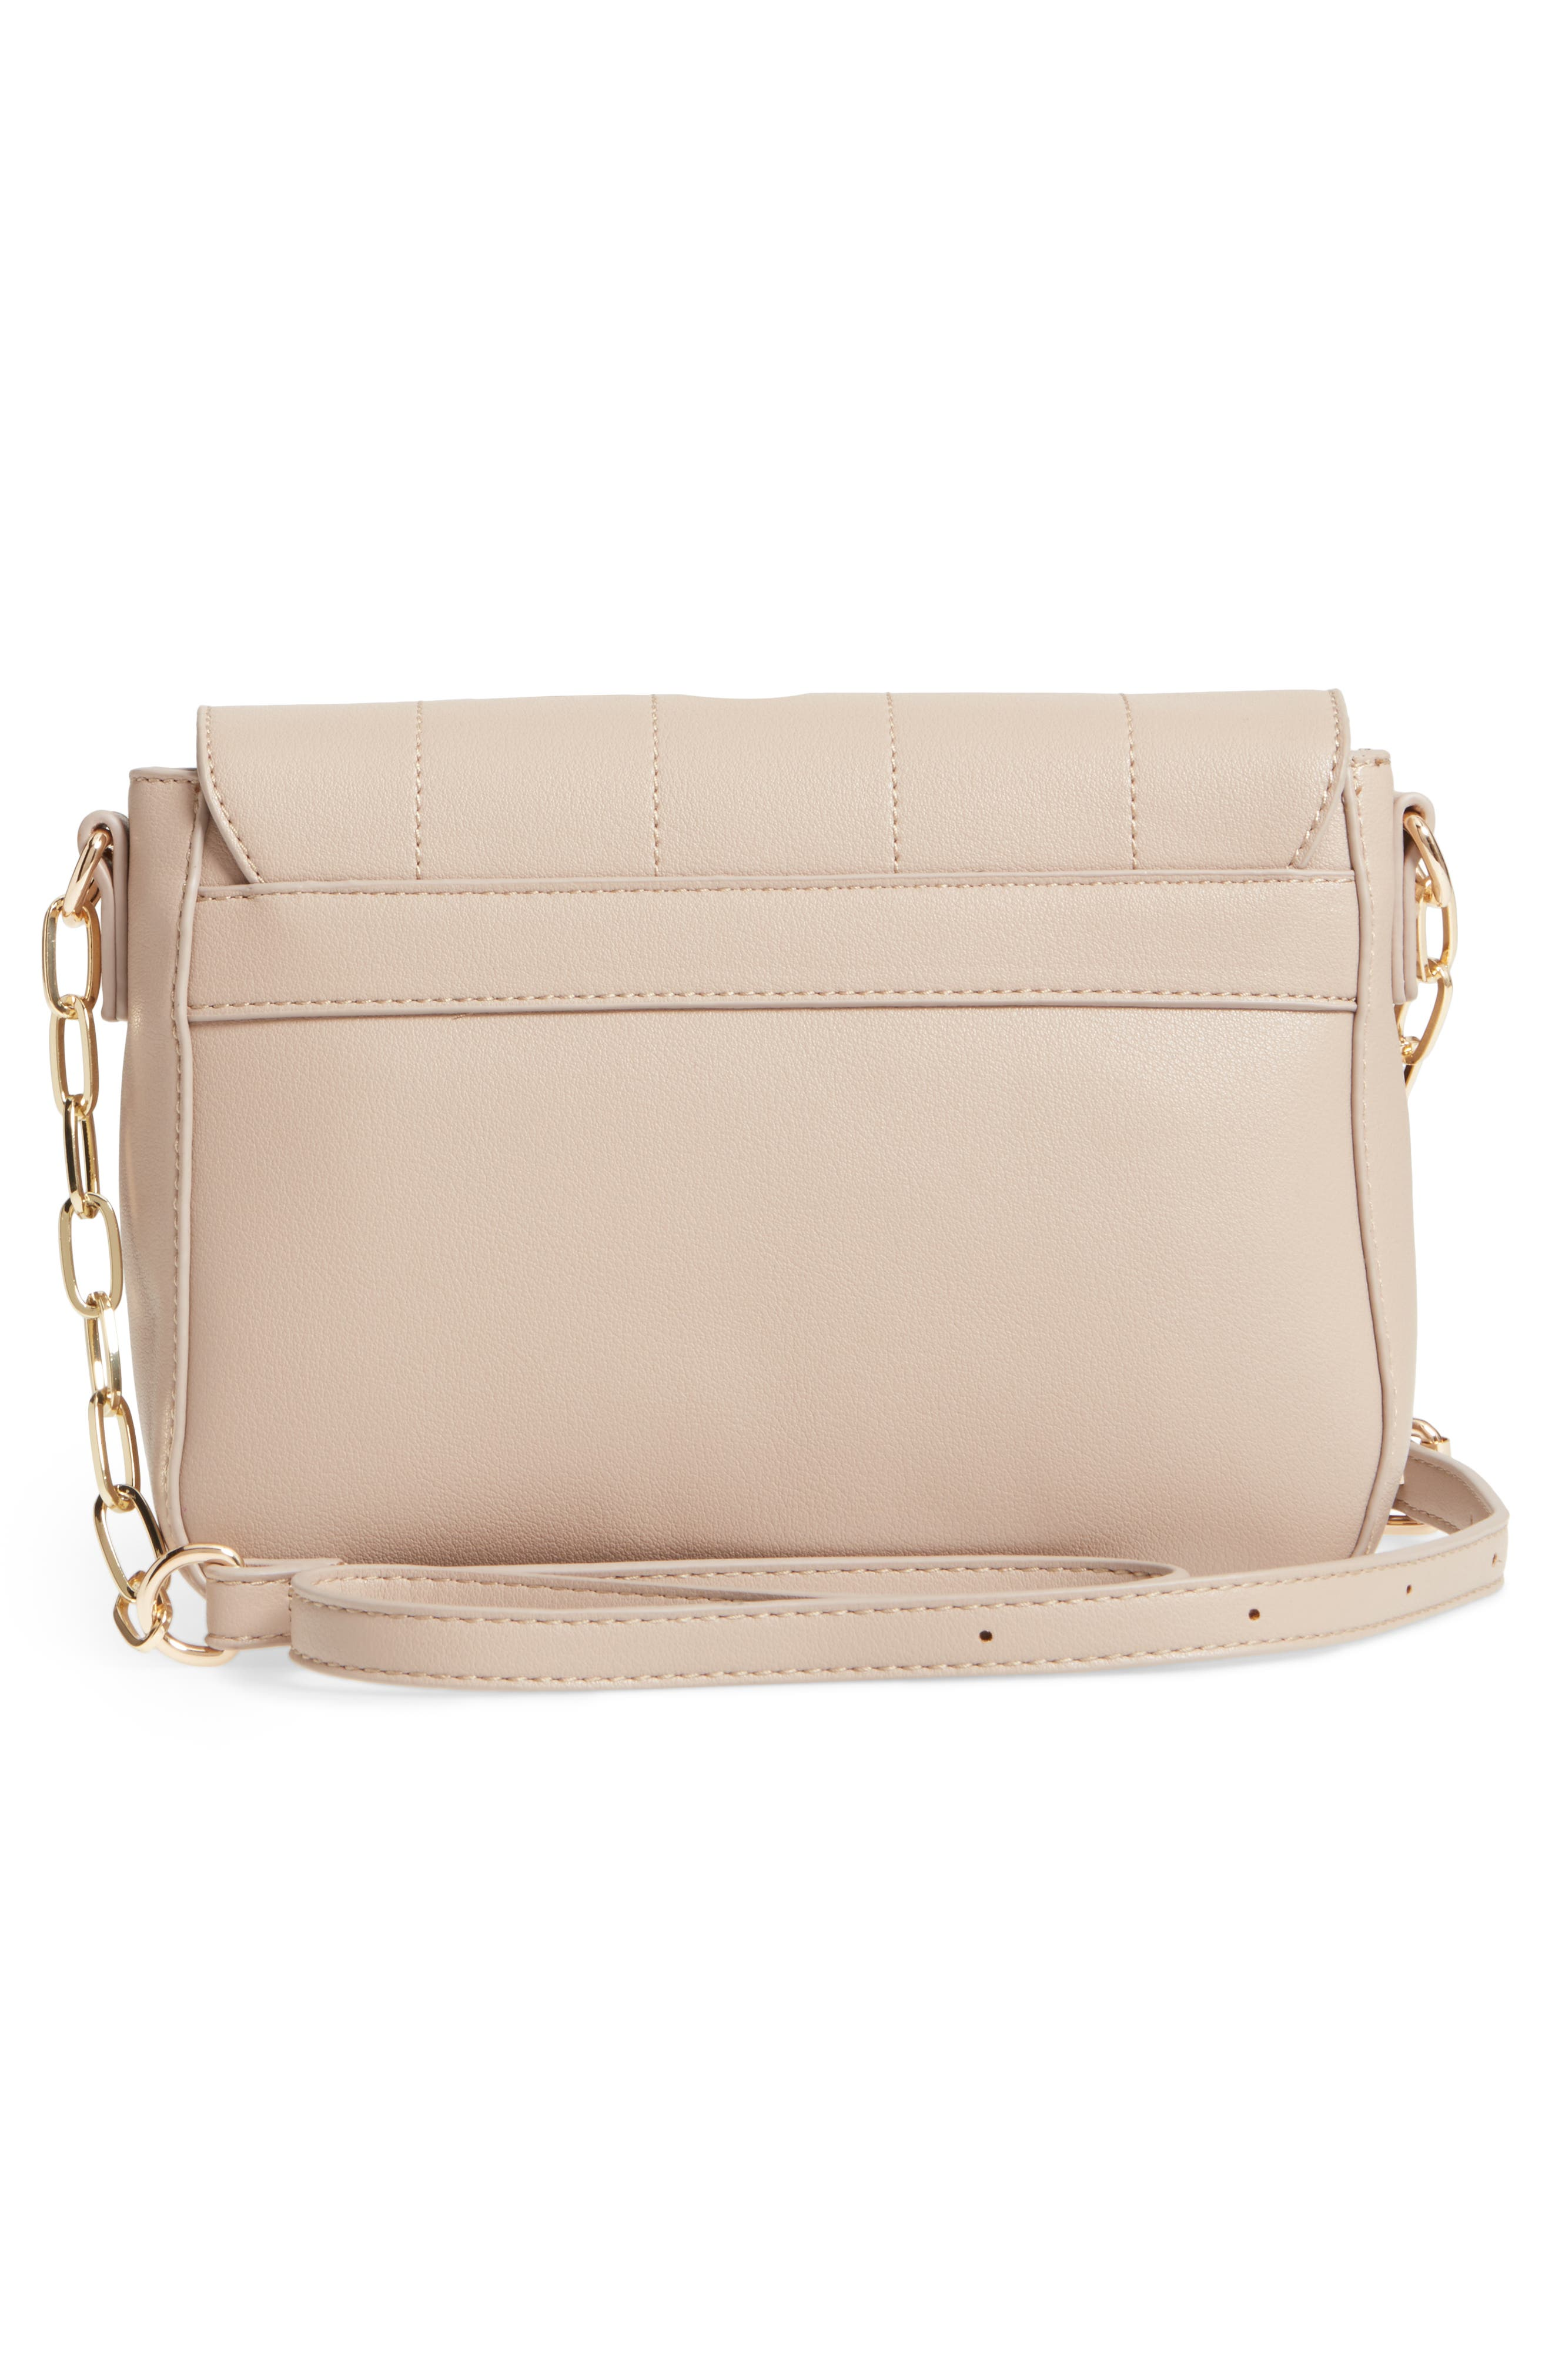 Colie Faux Leather Crossbody Bag,                             Alternate thumbnail 3, color,                             Taupe